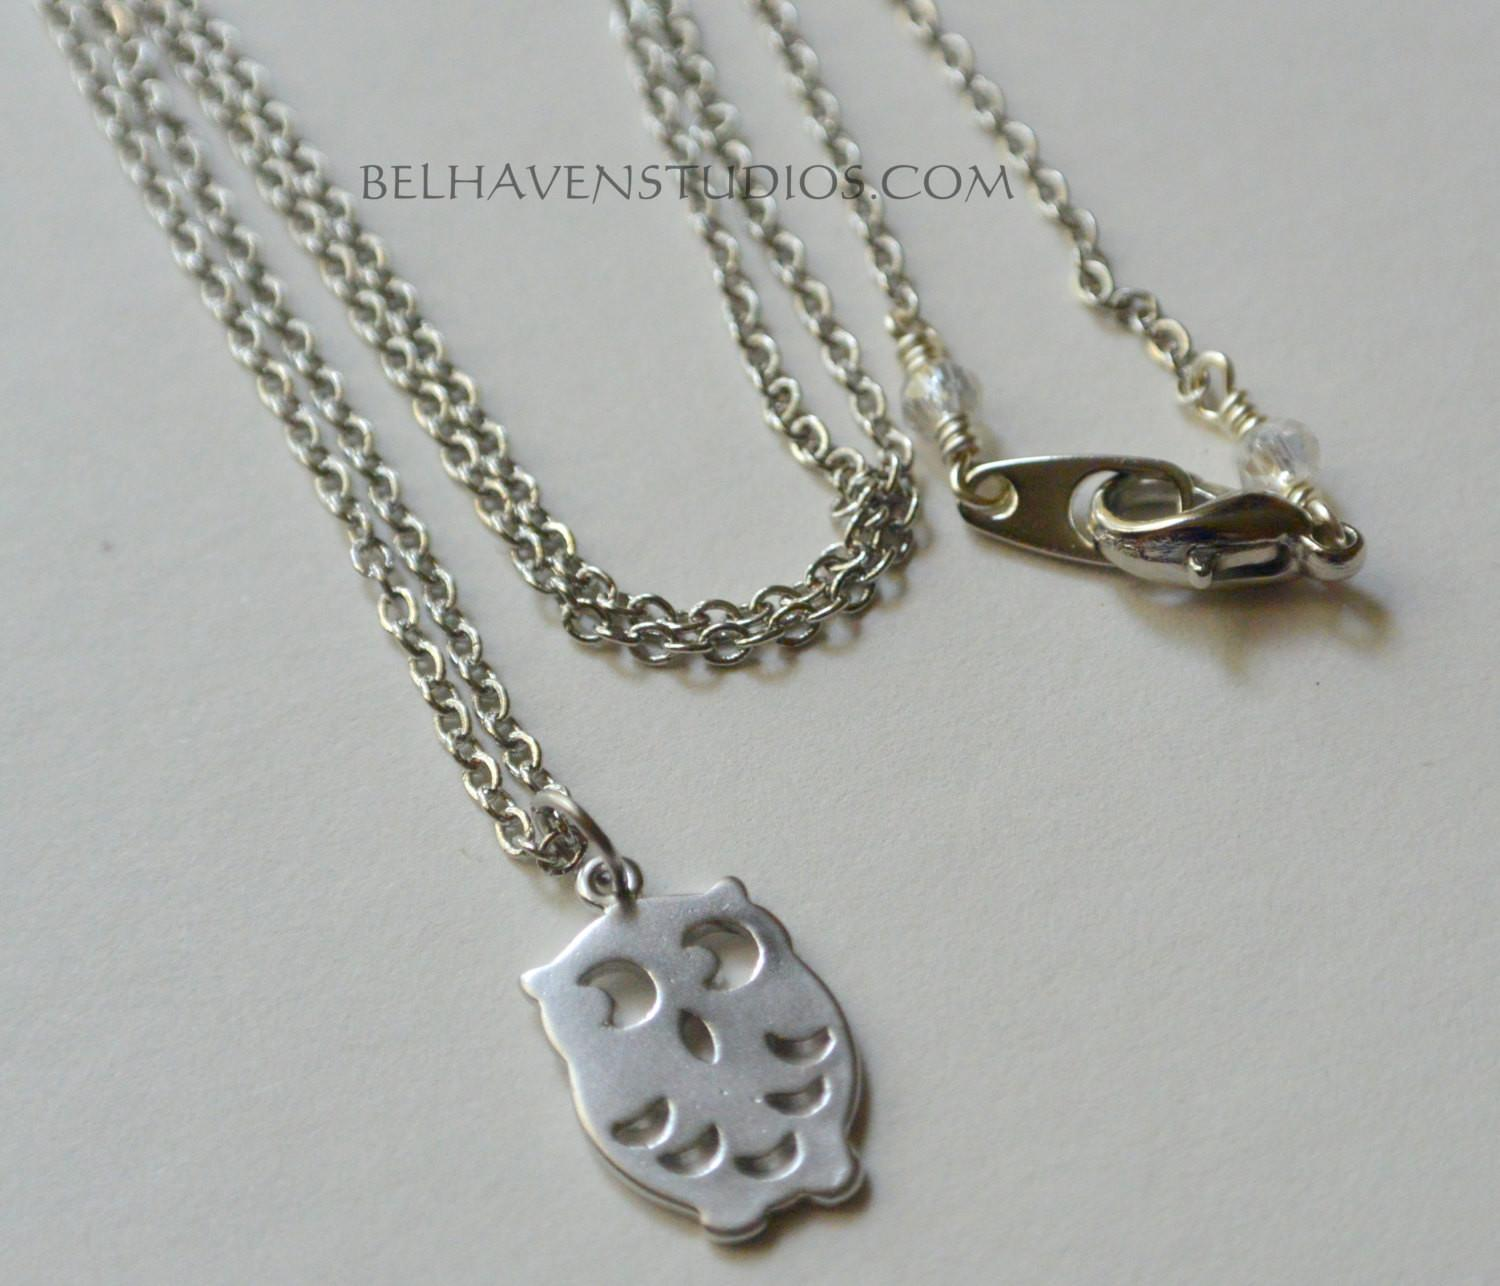 Modern Simple Minimalist Jewelry Everyday Silver Petite Owl